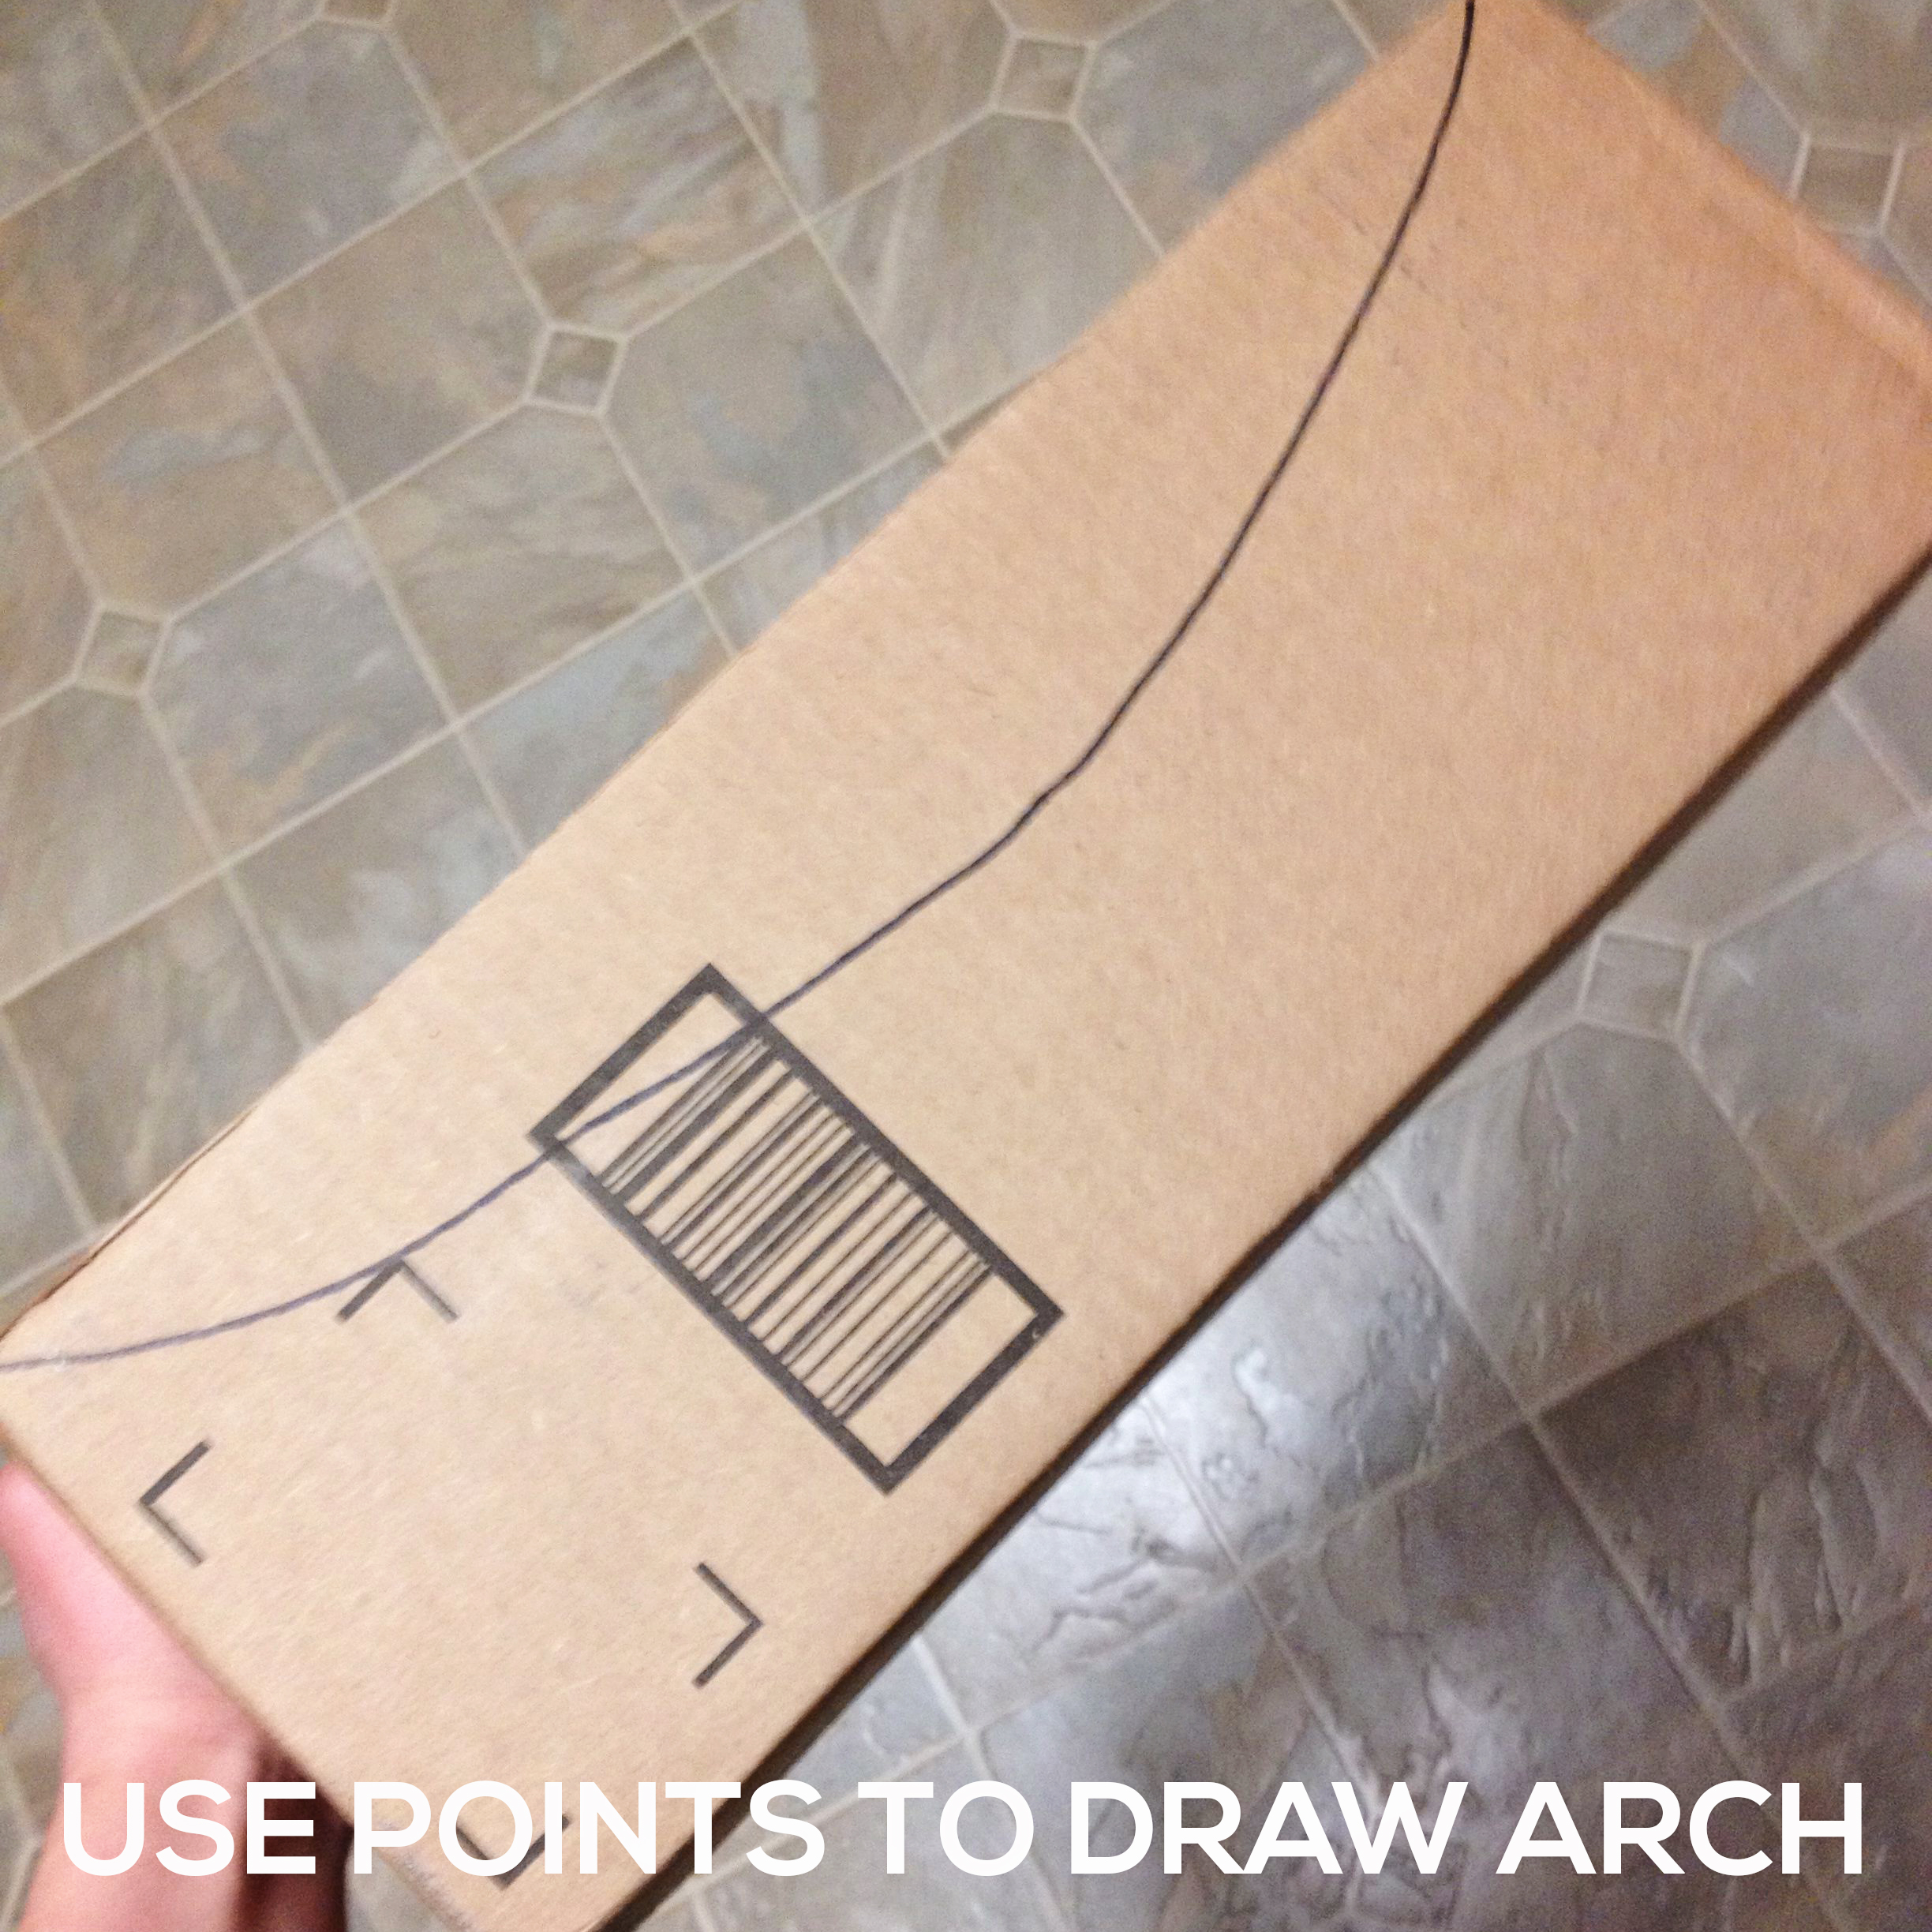 DRAW-ARCH Make a DIY Box Airplane Prop for Newborn Photography Guest Bloggers Photography Tips Uncategorized